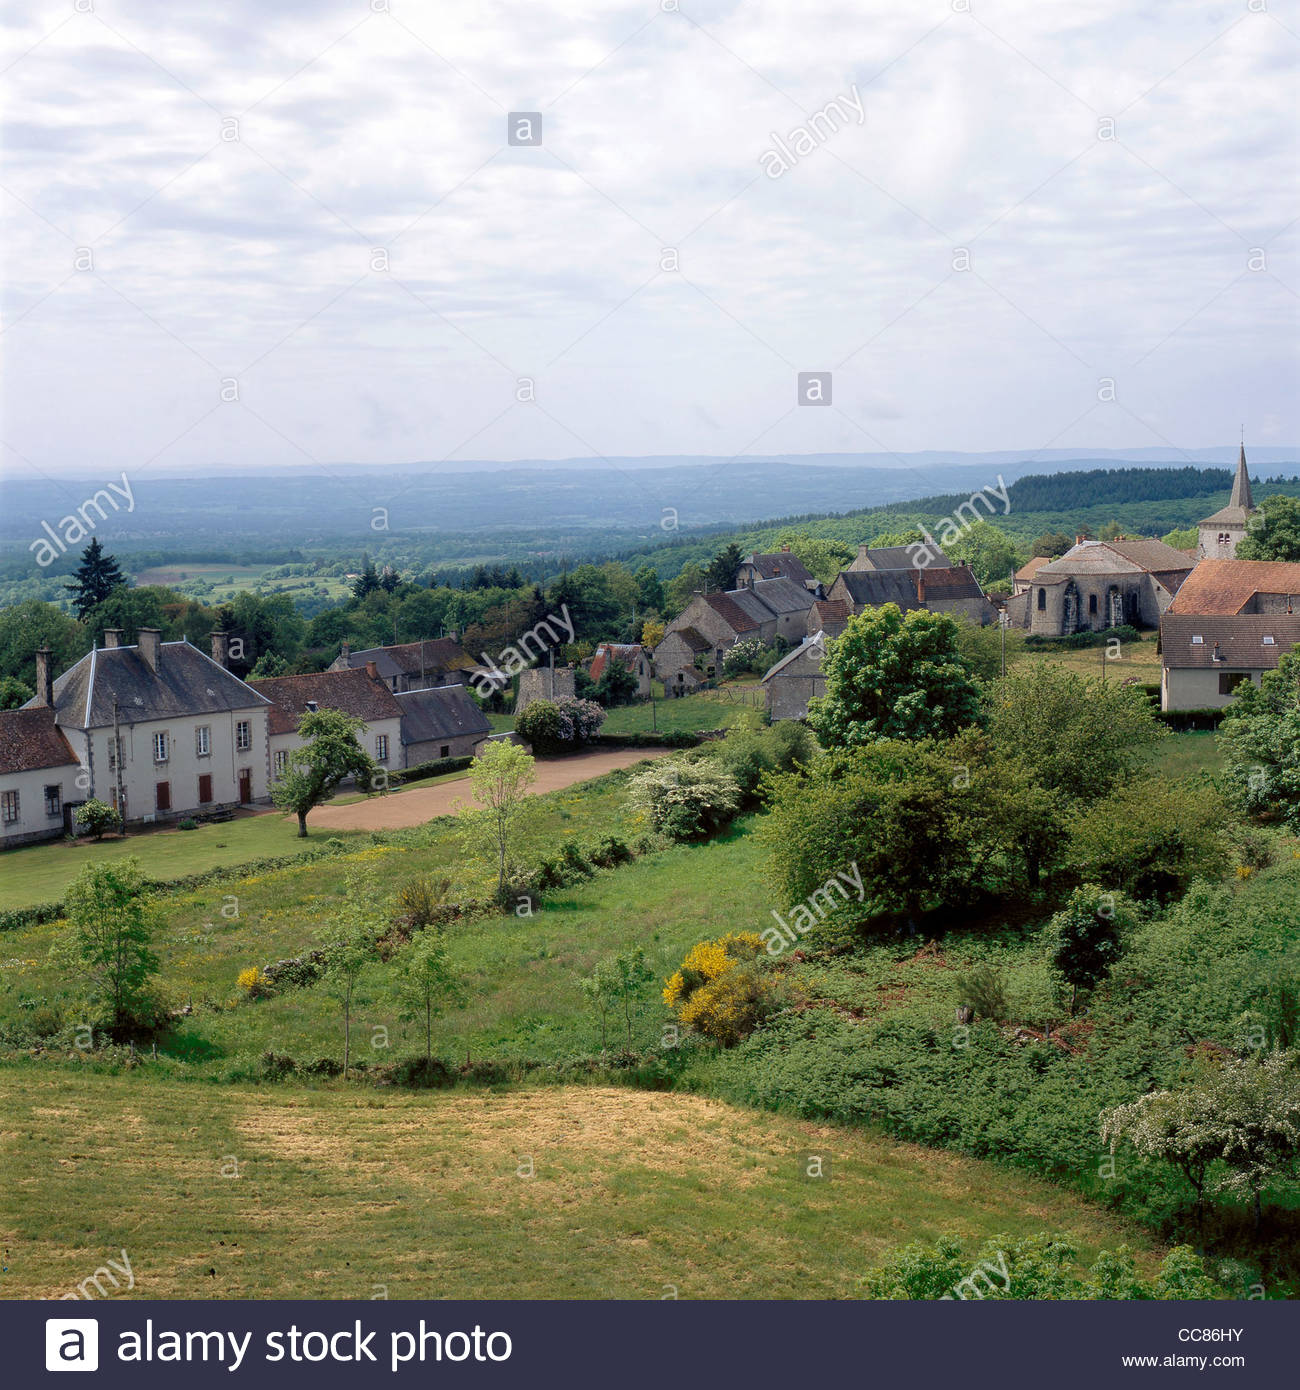 View of Toulx-Sainte-Croix, Creuse, Limousin, France - Stock Image